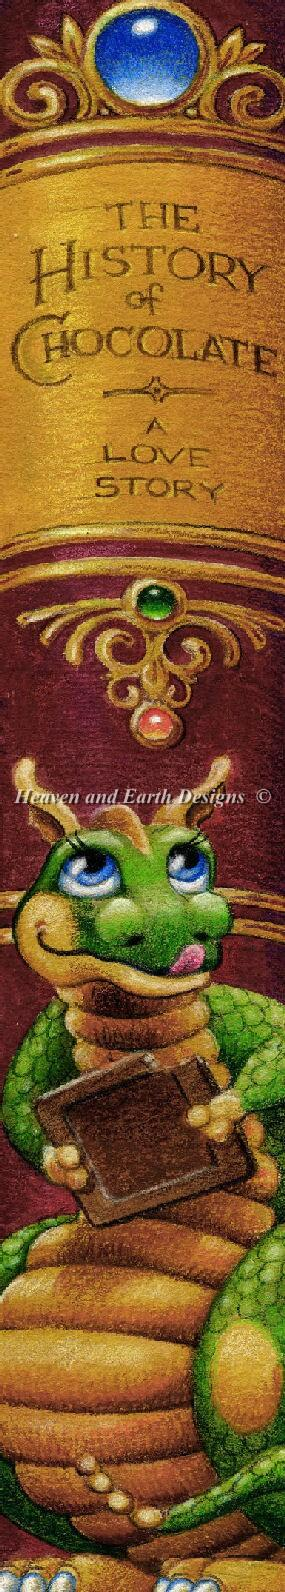 Heaven and Earth Designs Storykeep History of Chocolate